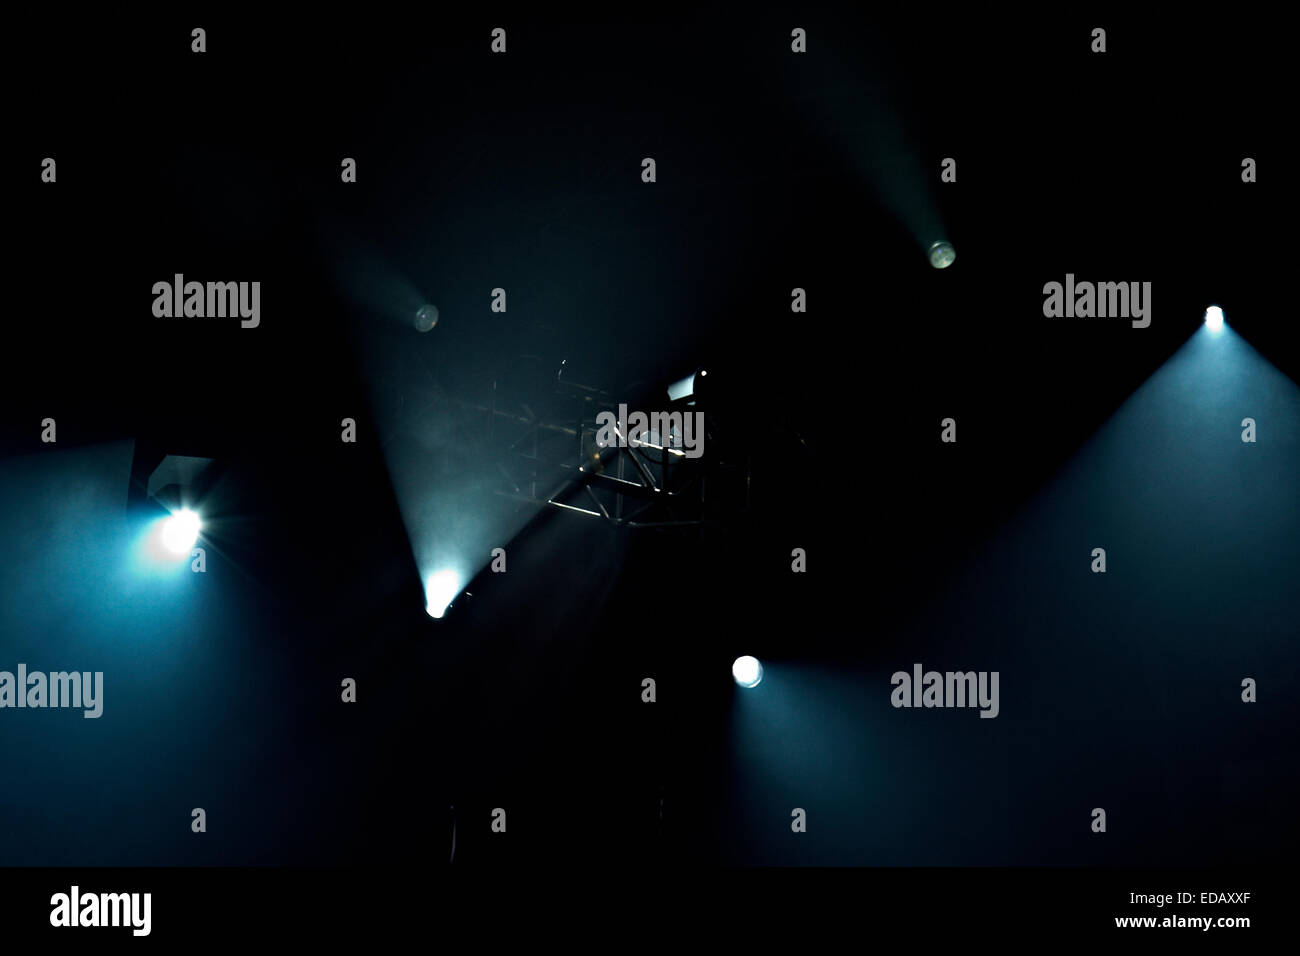 Few stage lights on a black background - Stock Image